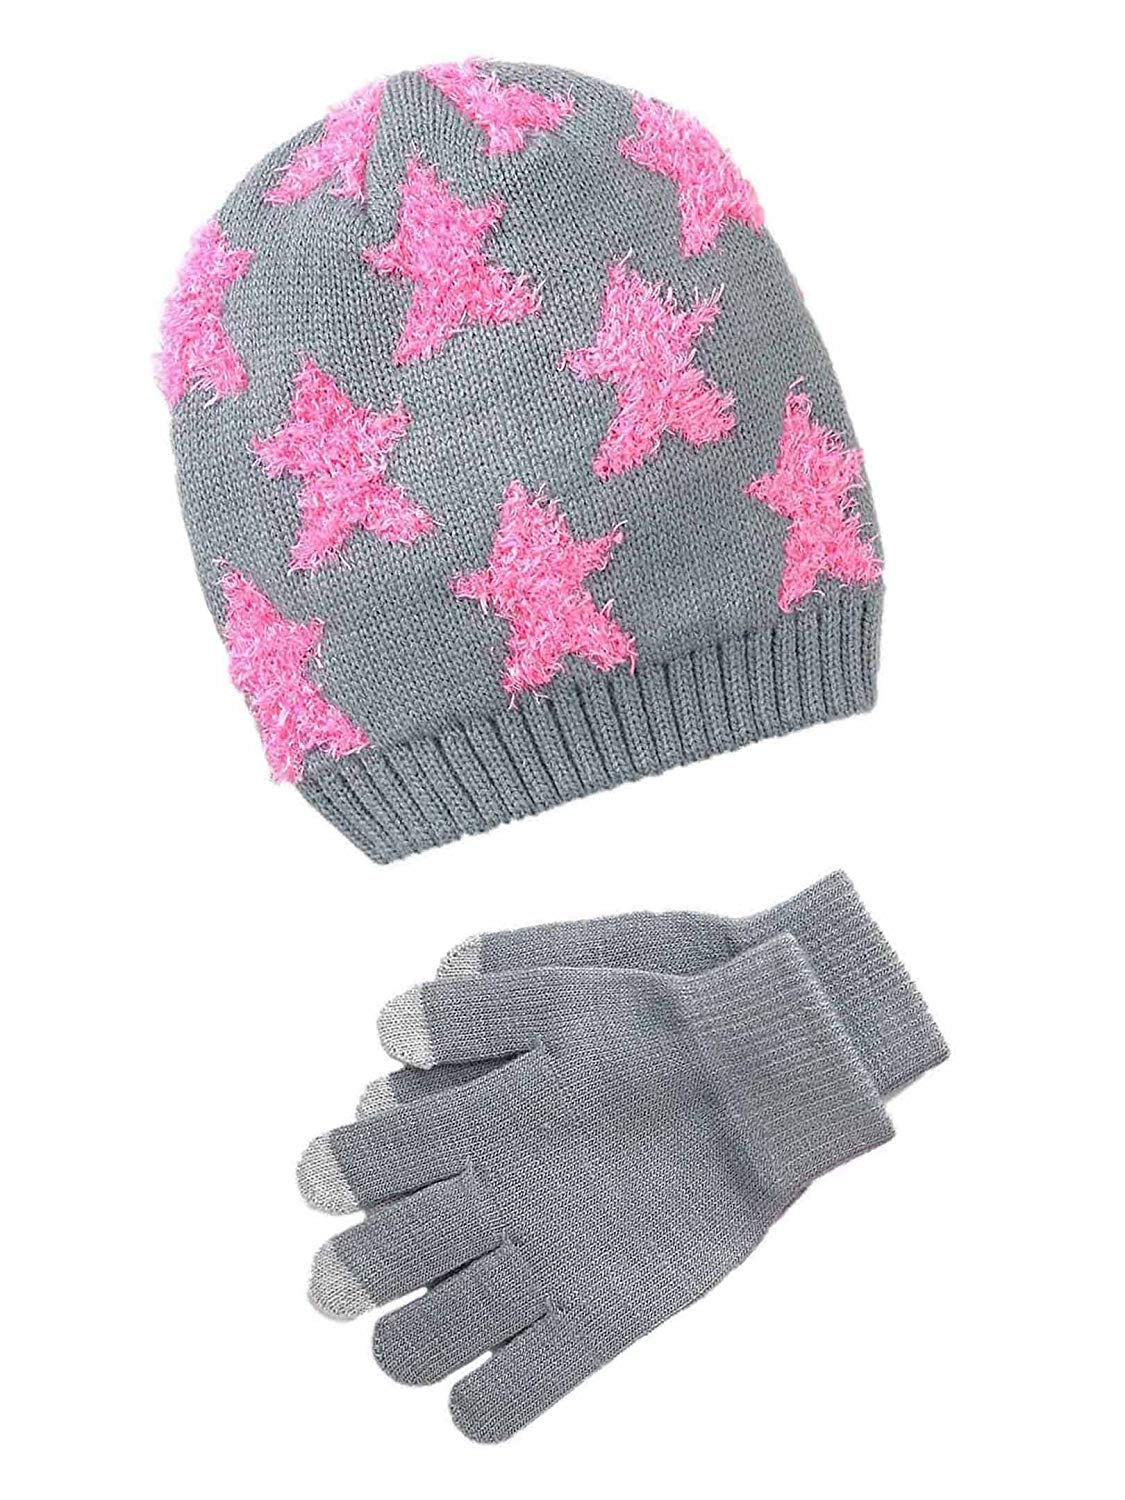 29d189a2b2f Get Quotations · SO Girls Star Stretch Knit Hat   Texting Gloves Set - Pink    Grey